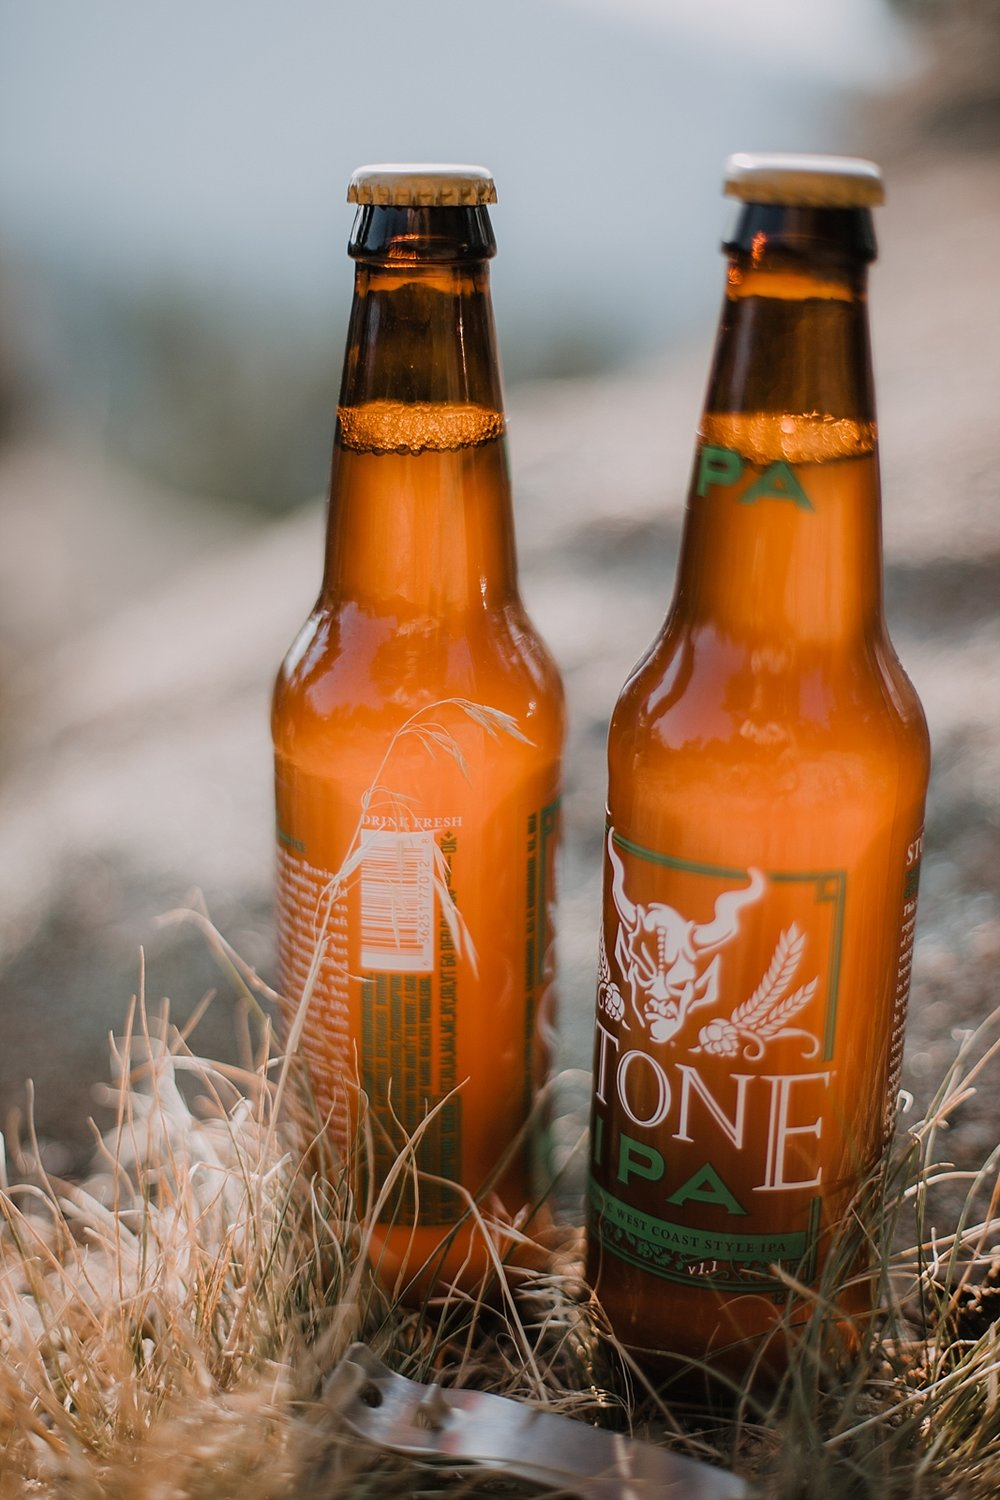 elopement beers, celebratory beers, boulder colorado elopement, intimate colorado elopement, boulder colorado elopement photographer, realization point elopement, self solemnizing elopement